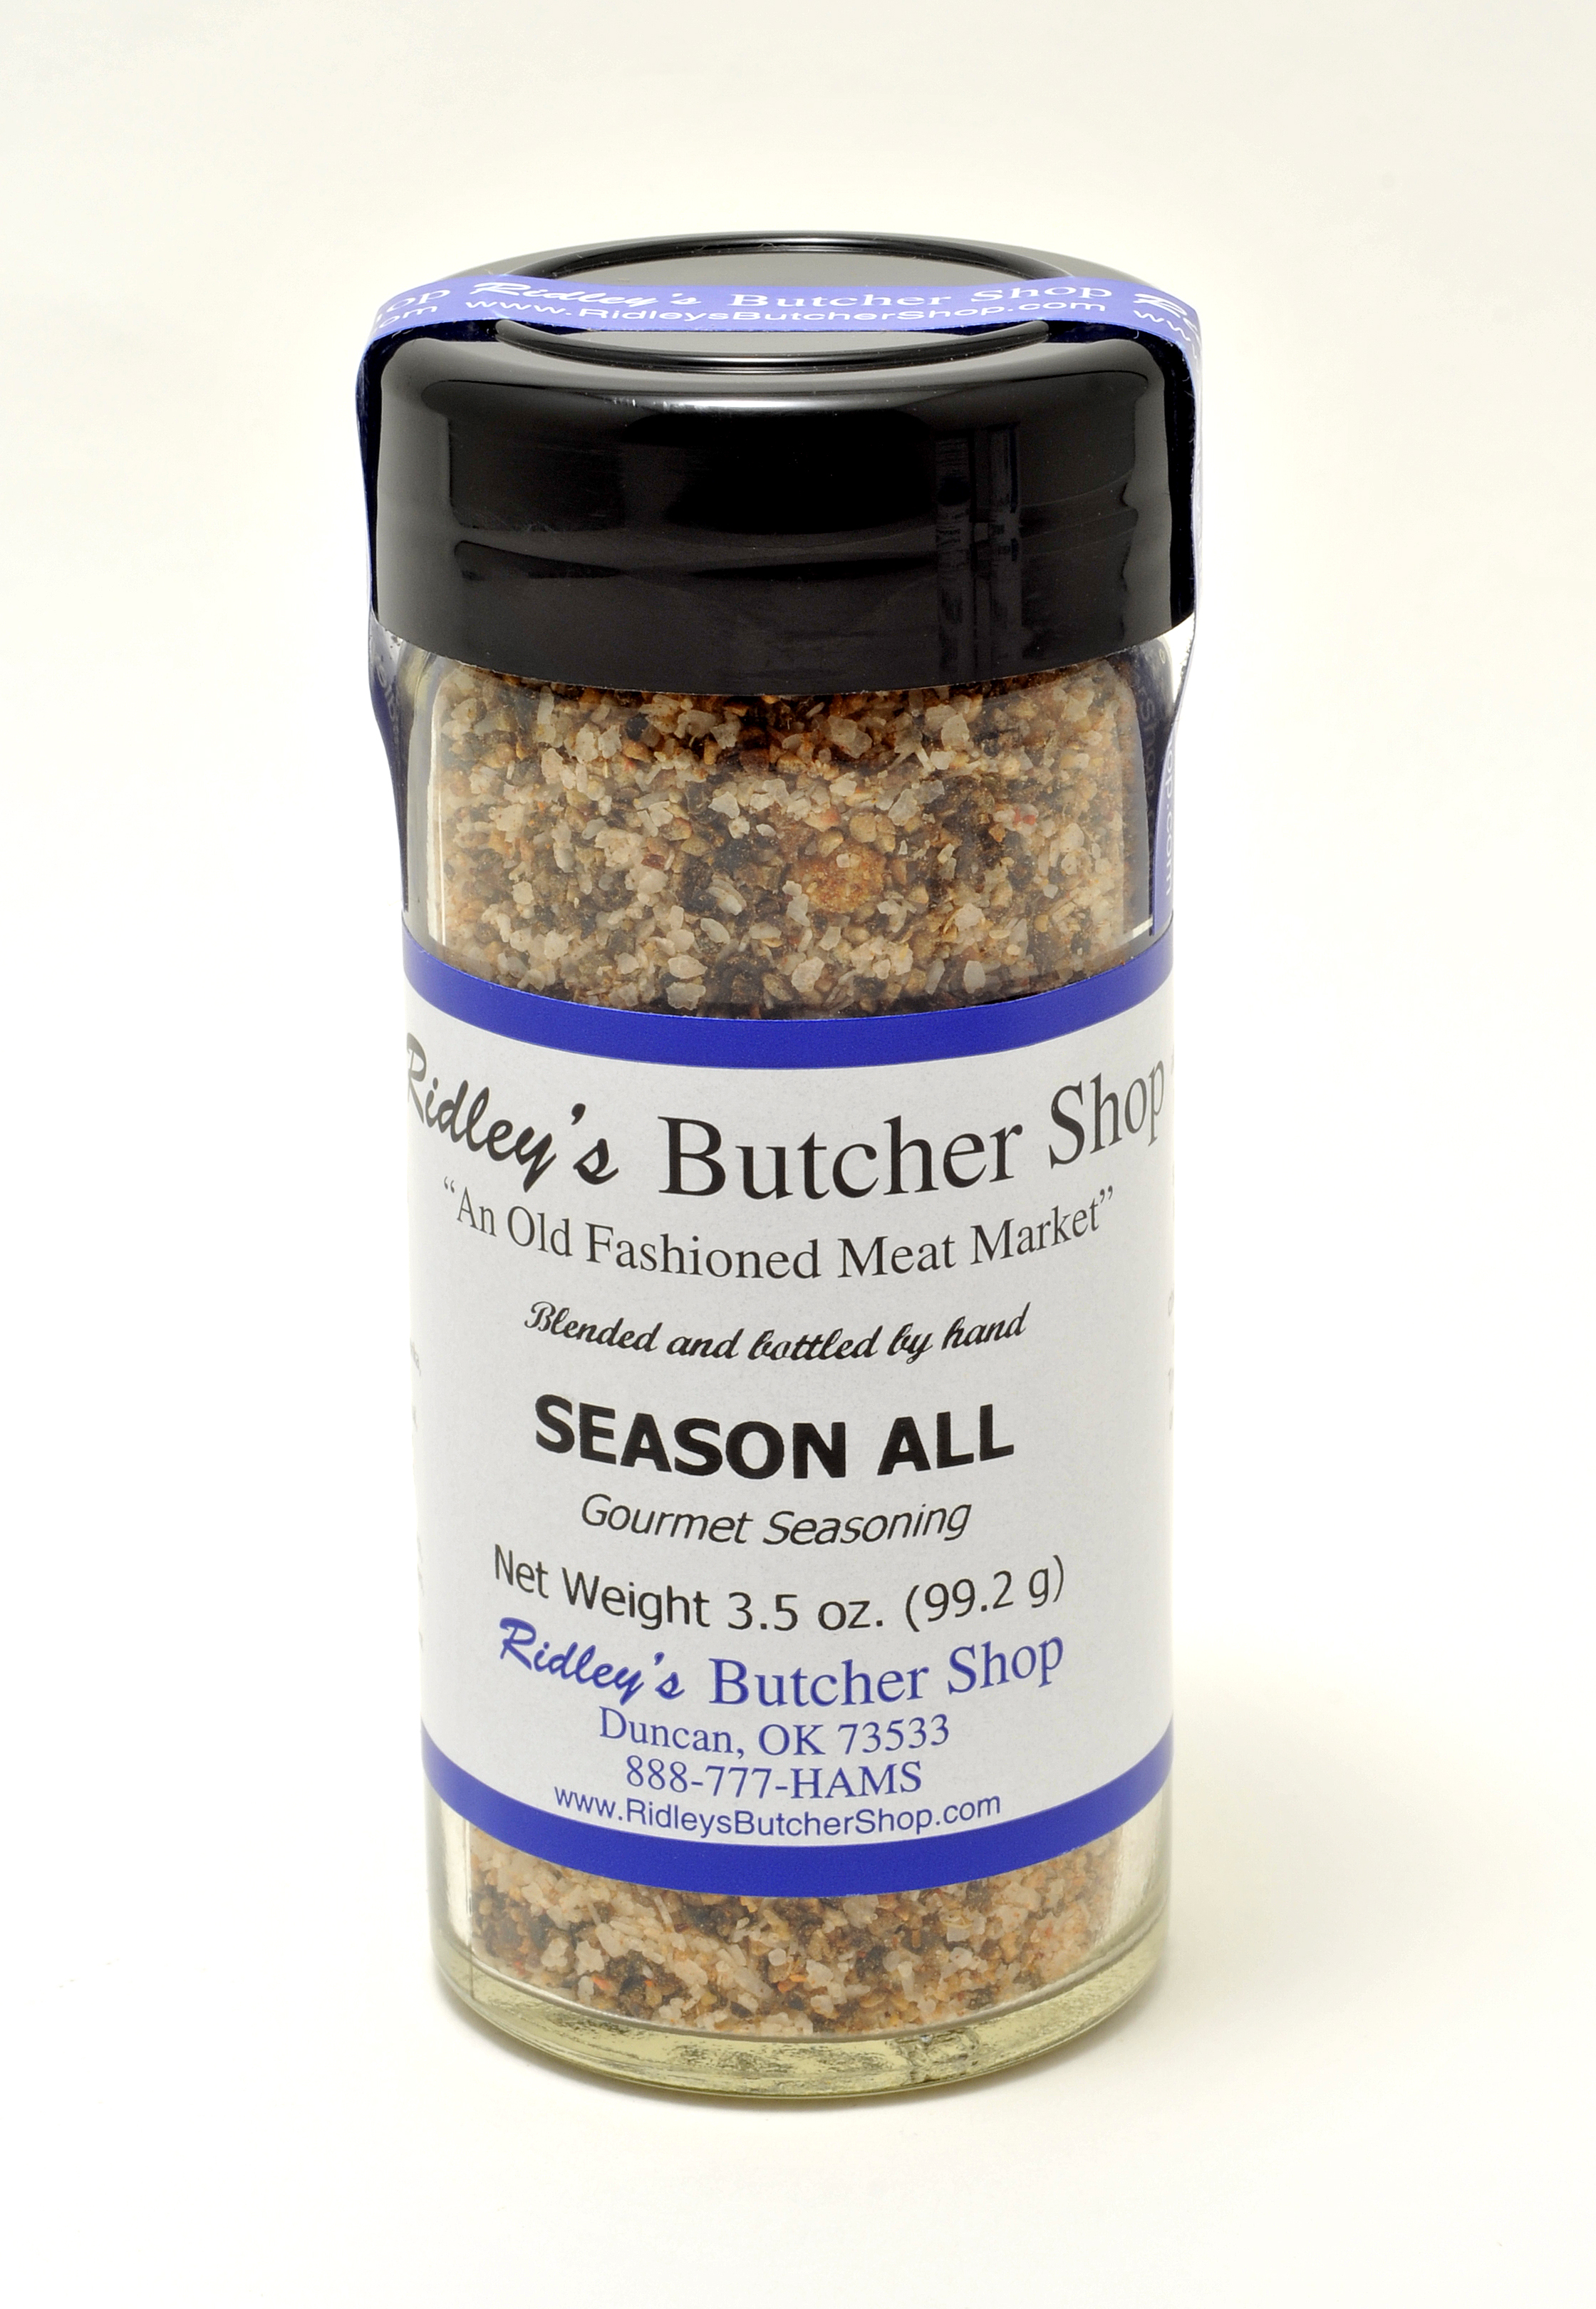 Steak seasons and rubs